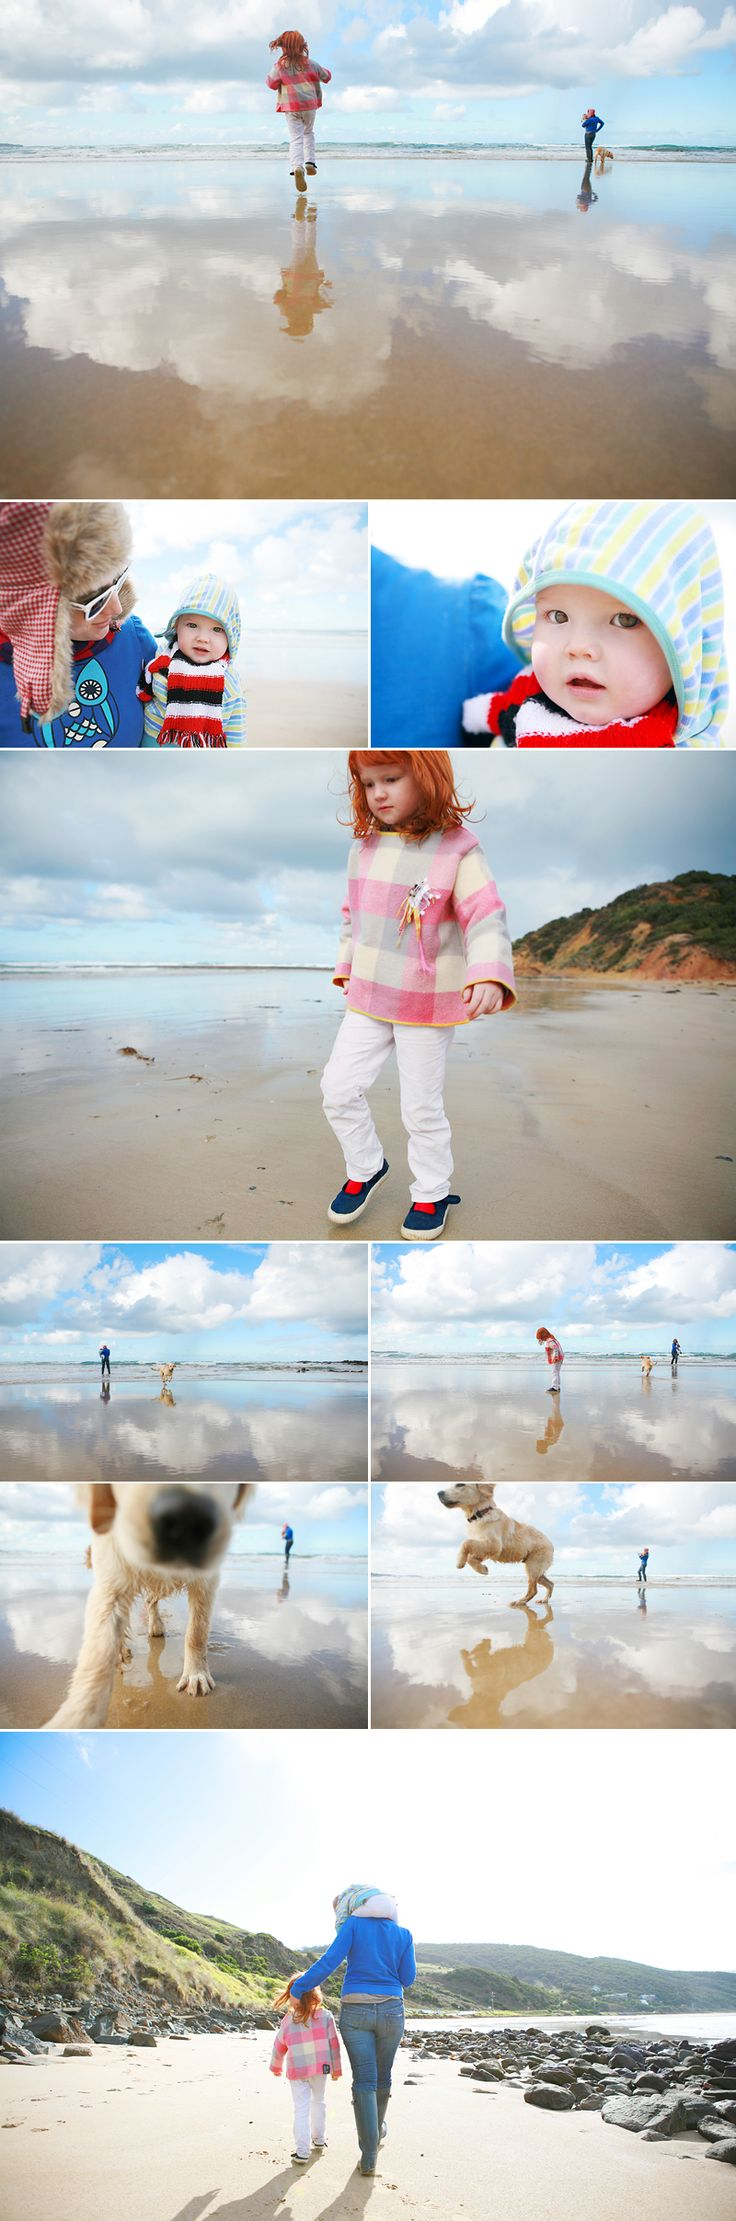 peta mazey photographerColours Ideas, Inspiration, Great Ocean Roads, Families Photography, Cleaning Photography, Families Toddlers, Families Photos, Beach Photography, Beach Togal